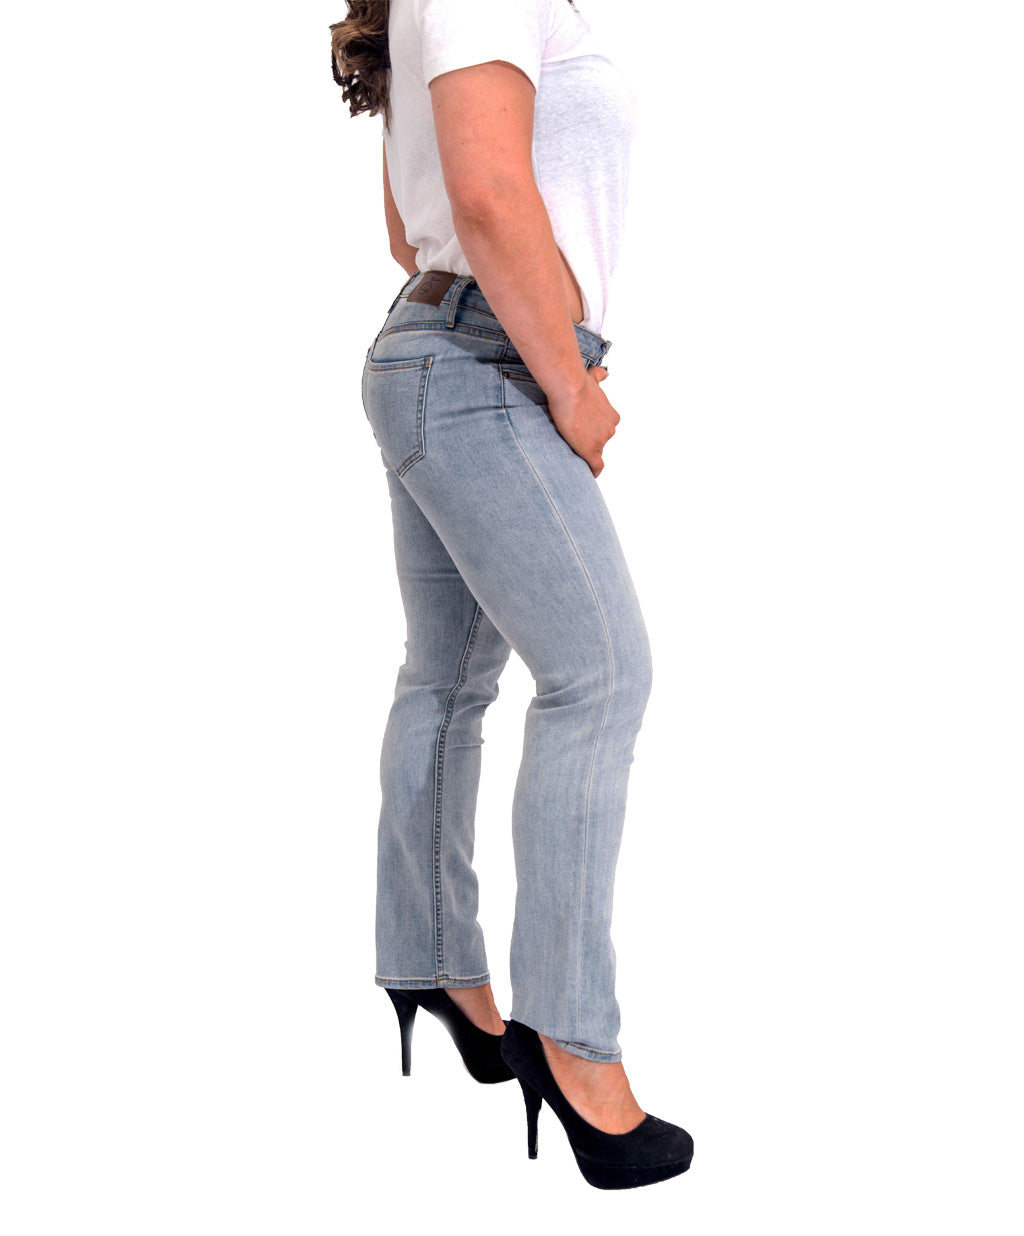 Women's Athletic Fit Jeans | Keirin Cut Jeans - Aguascalientes